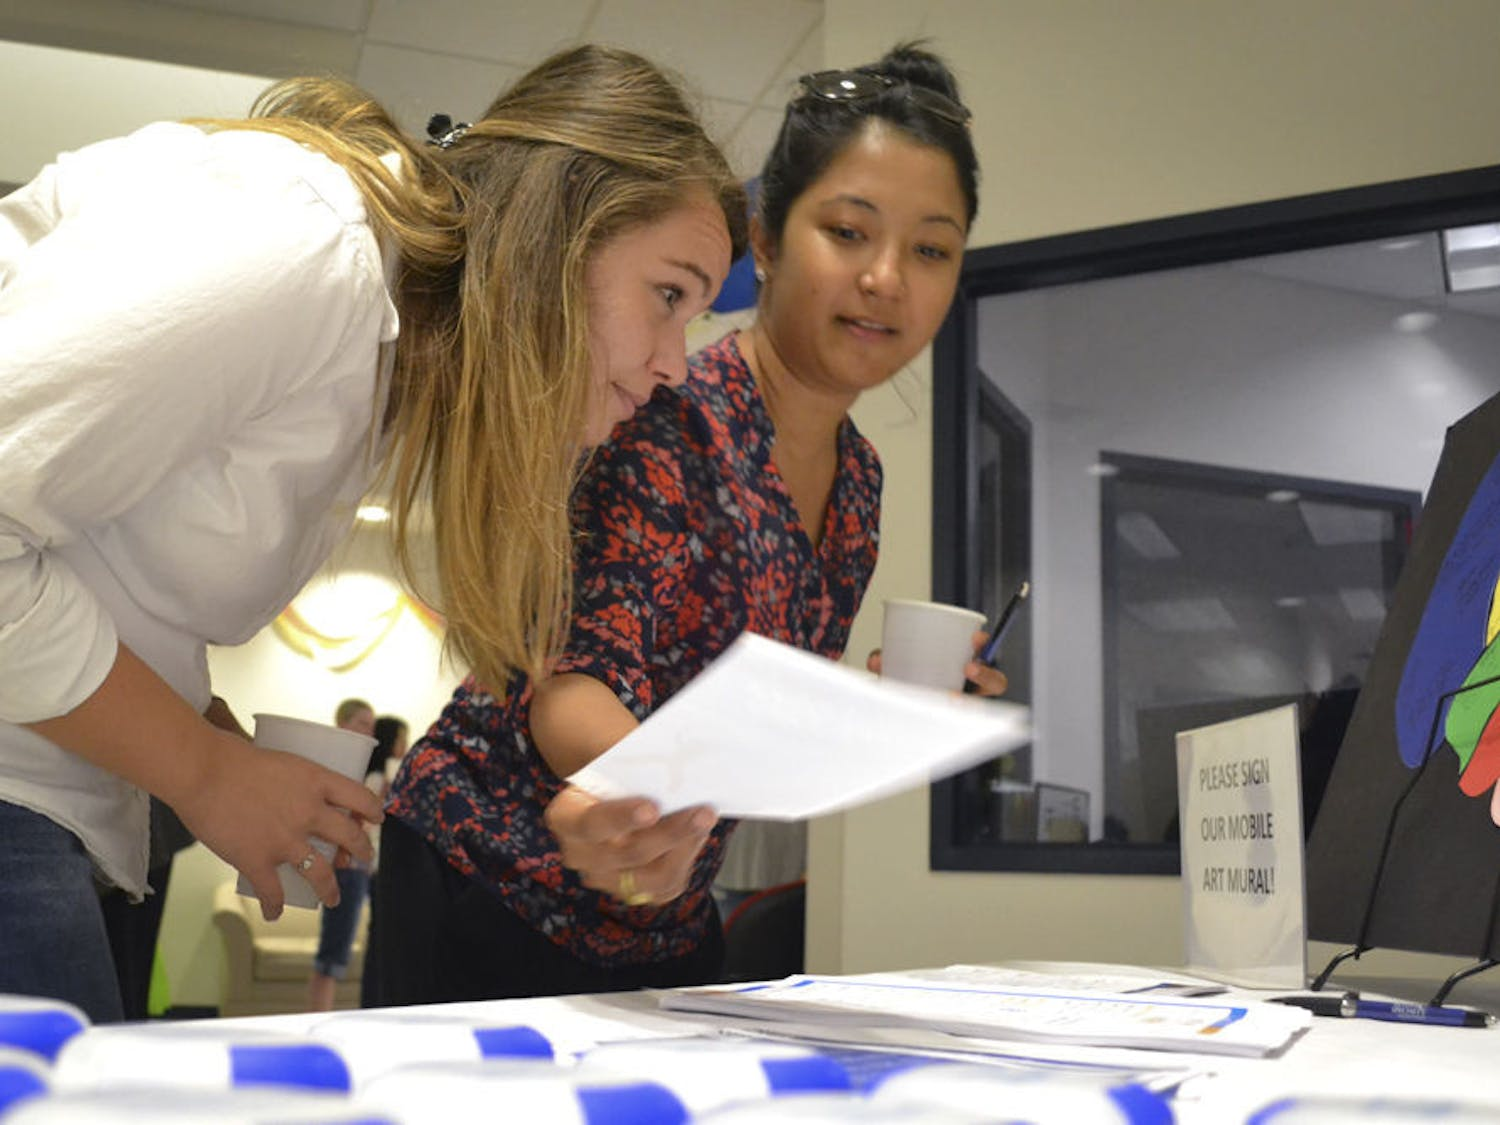 Mirsada Serdarevic (left), 24, and Shivani R. Khan, 28, both UF epidemiology PhD students, peruse an information table at UF HealthStreet during the Our Community, Our Health event Sept. 24, 2015. Khan picked up a flier for a 6-week dance program held by the UF Center for Arts in Medicine, which both girls said they will attend.